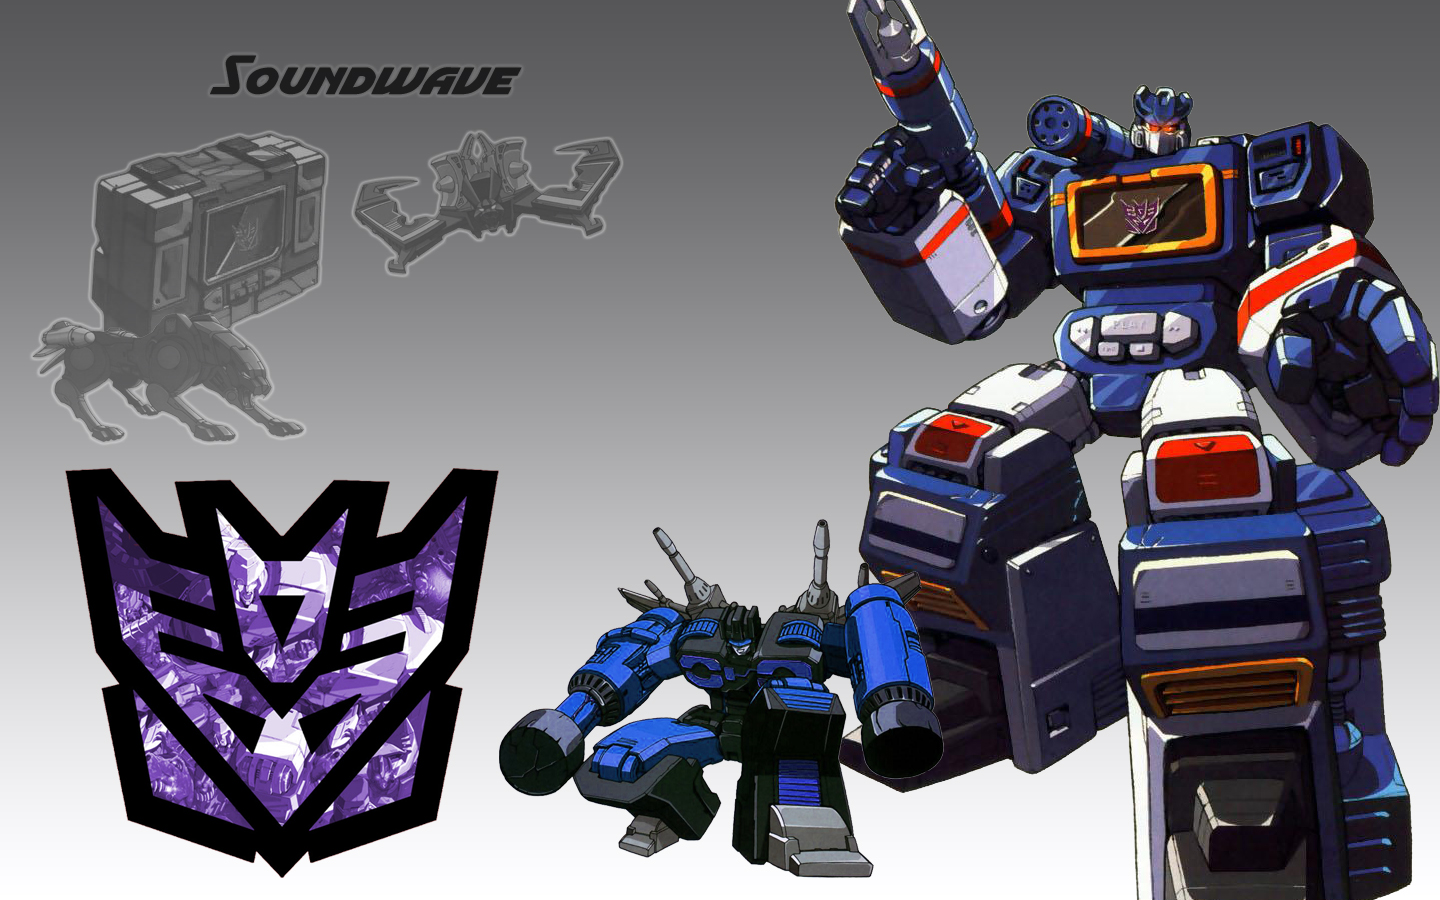 transformers wallpapers soundwave 1440x900